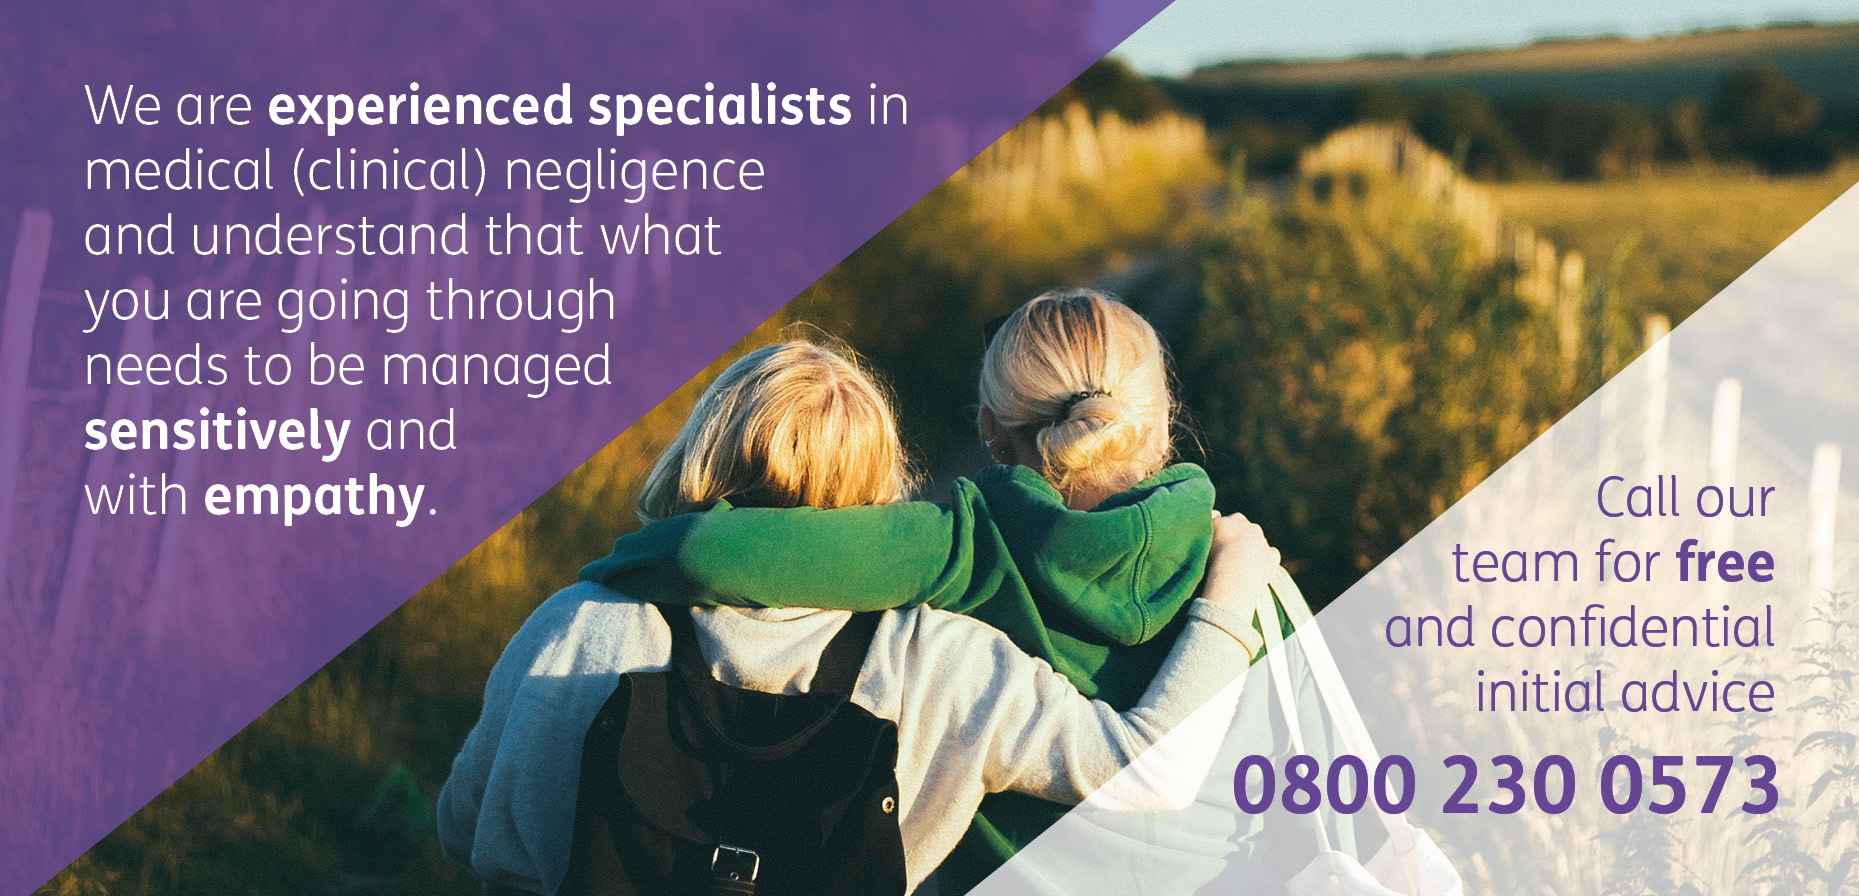 clinical-negligence-call-to-action-250719